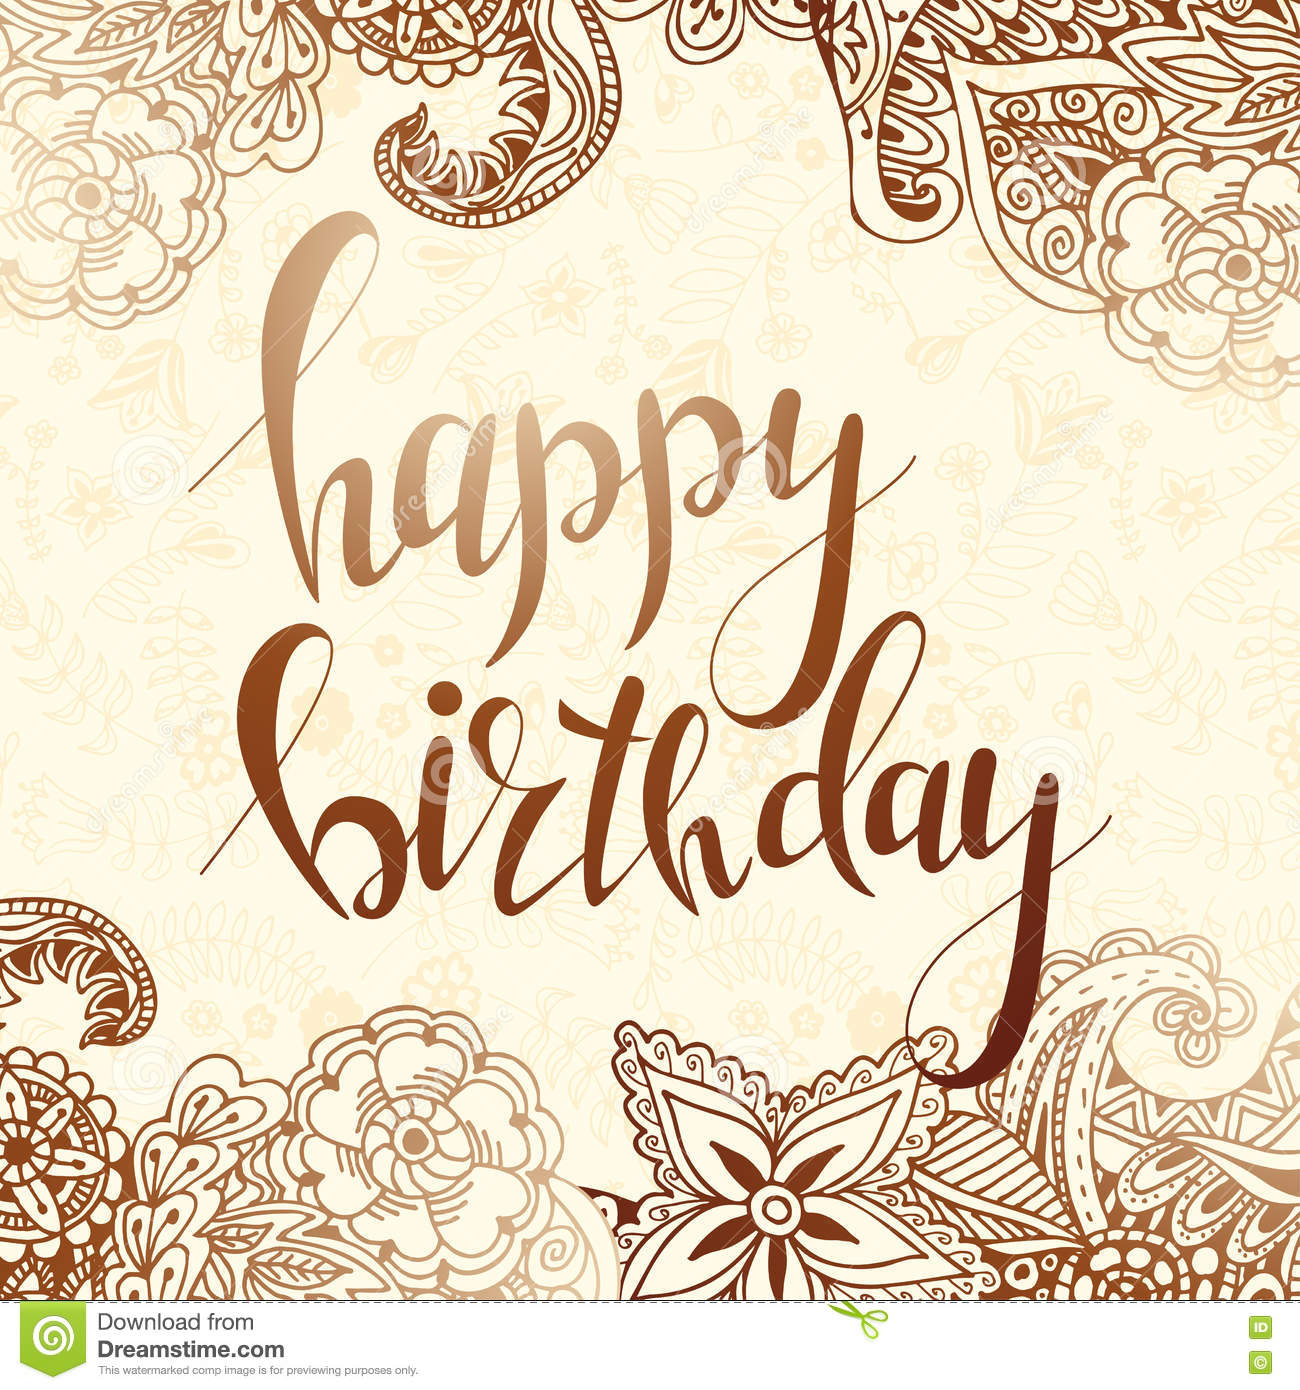 Vector Hand Lettering Happy Birthday Greeting Card With Calligraphy Design Black And White Overlay